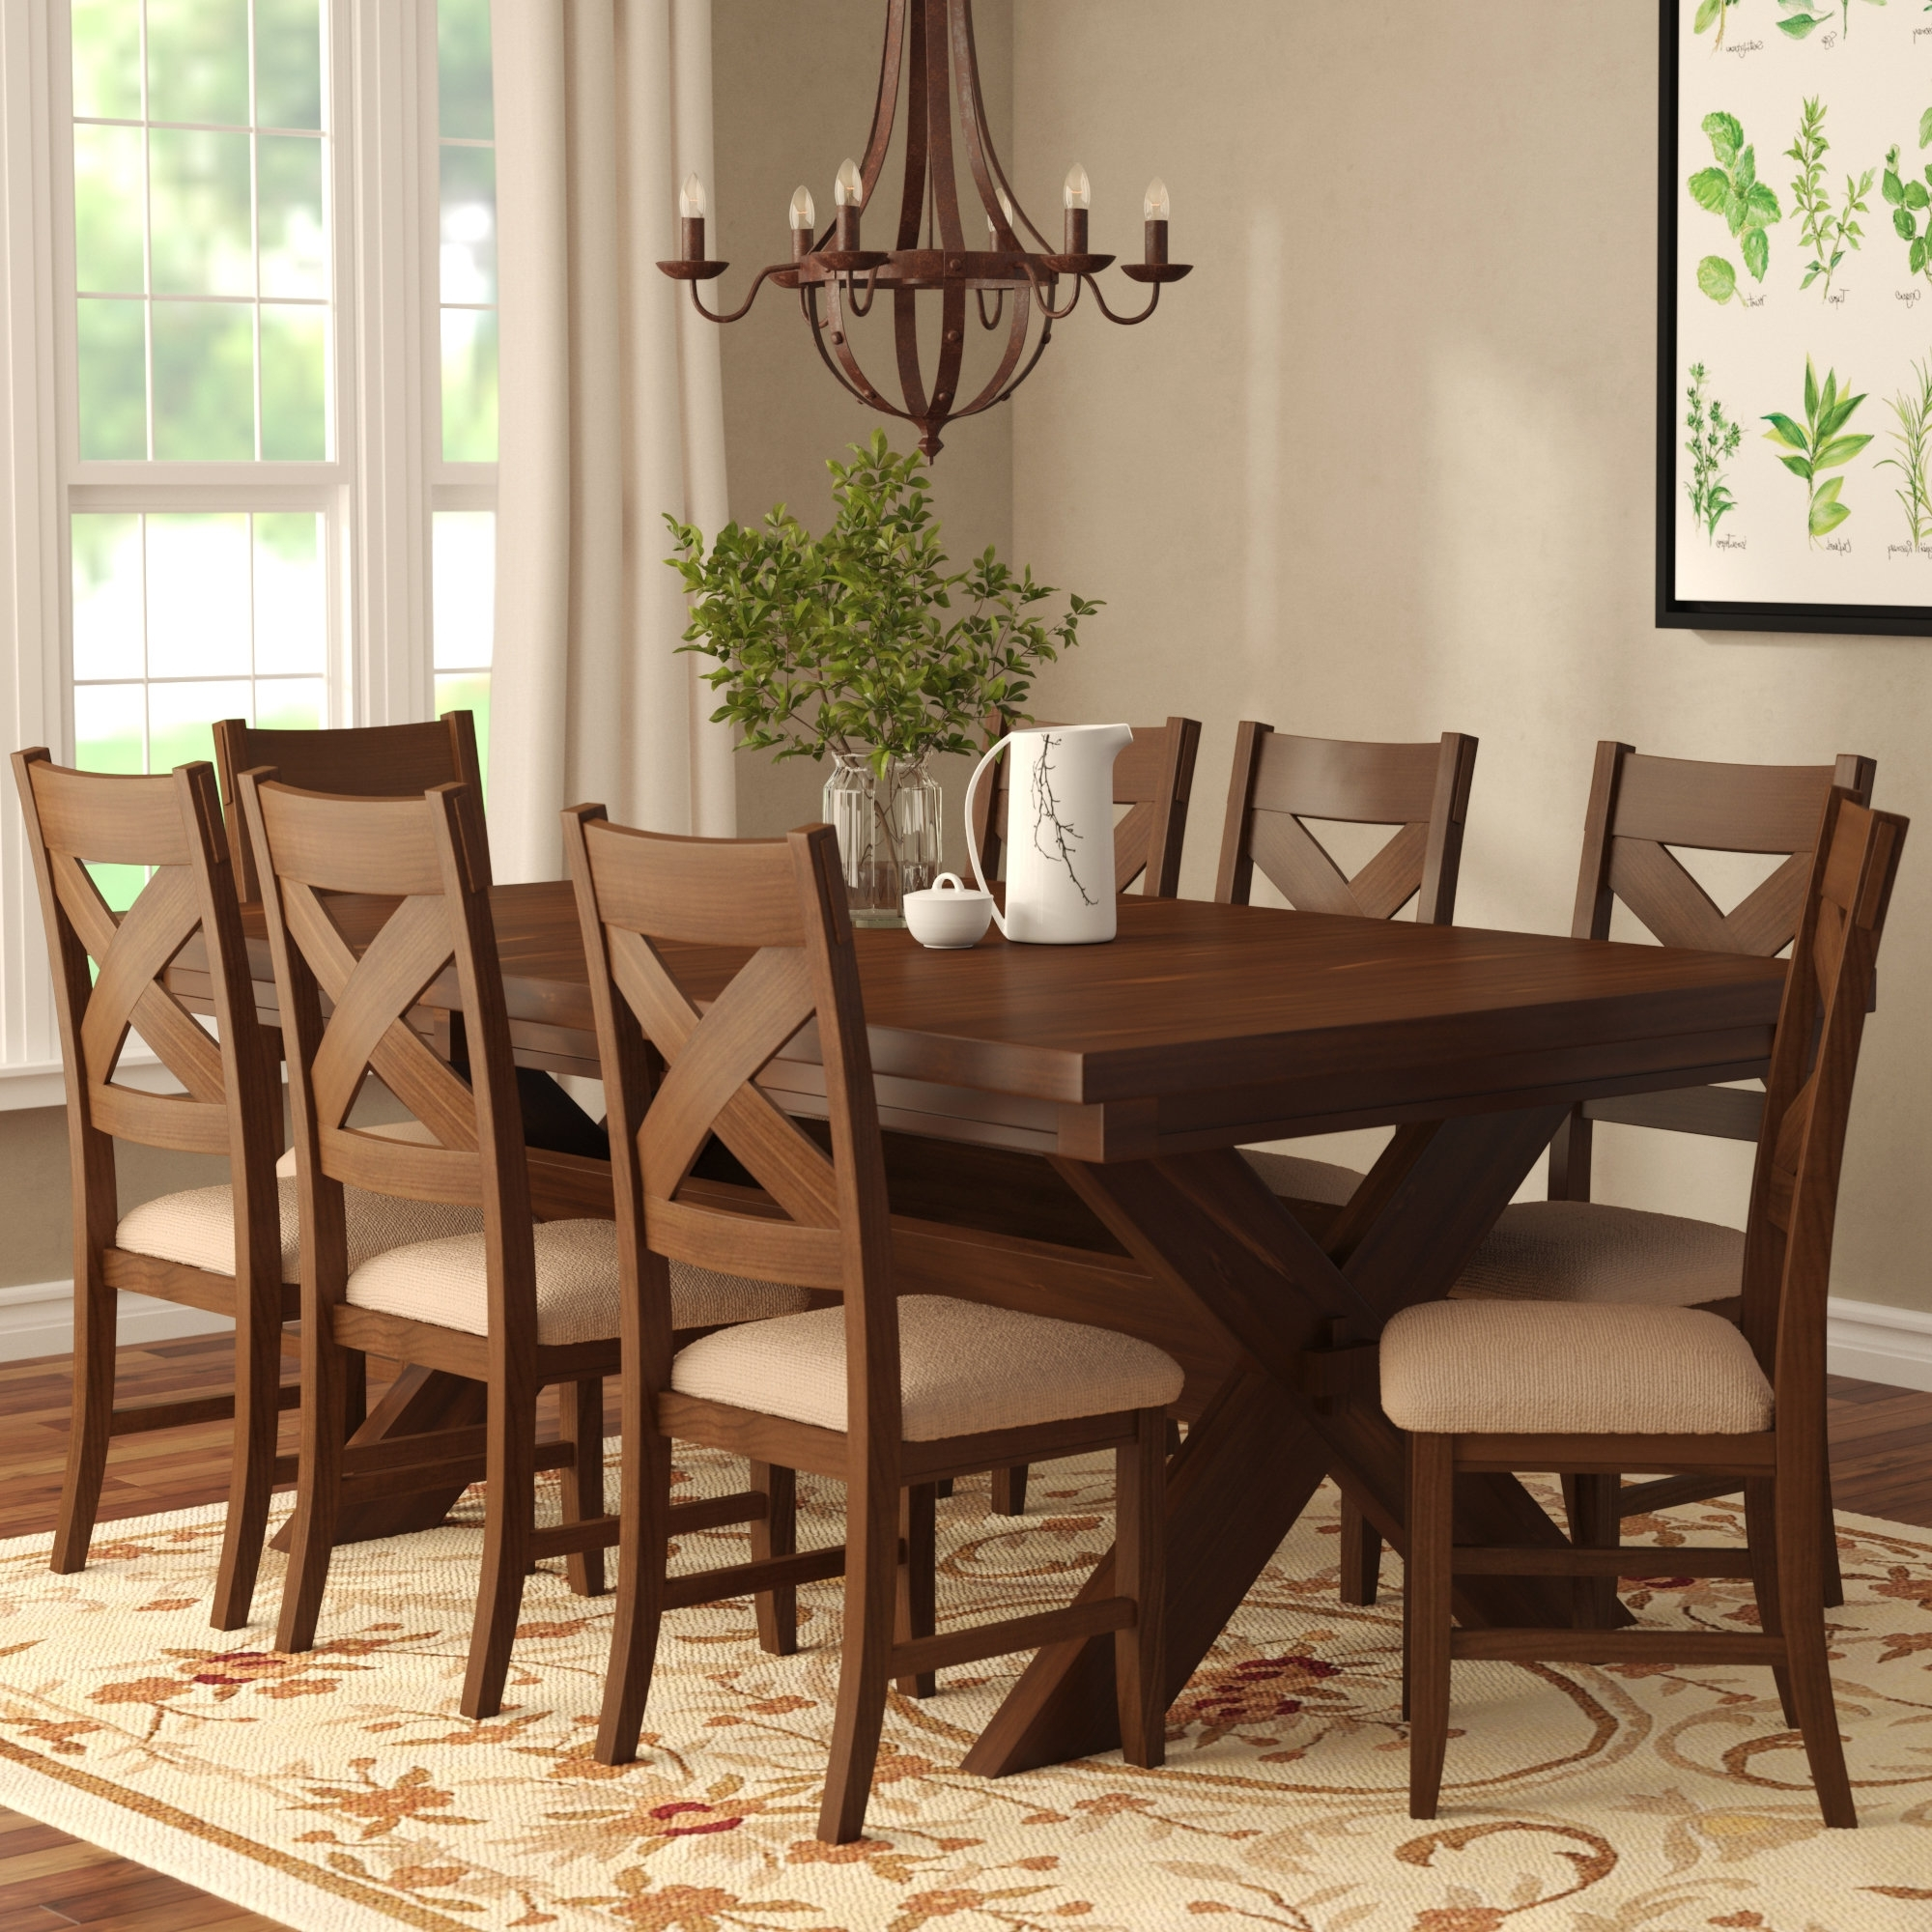 Caden 6 Piece Dining Sets With Upholstered Side Chair Regarding Famous Laurel Foundry Modern Farmhouse Isabell 9 Piece Dining Set & Reviews (Gallery 17 of 25)